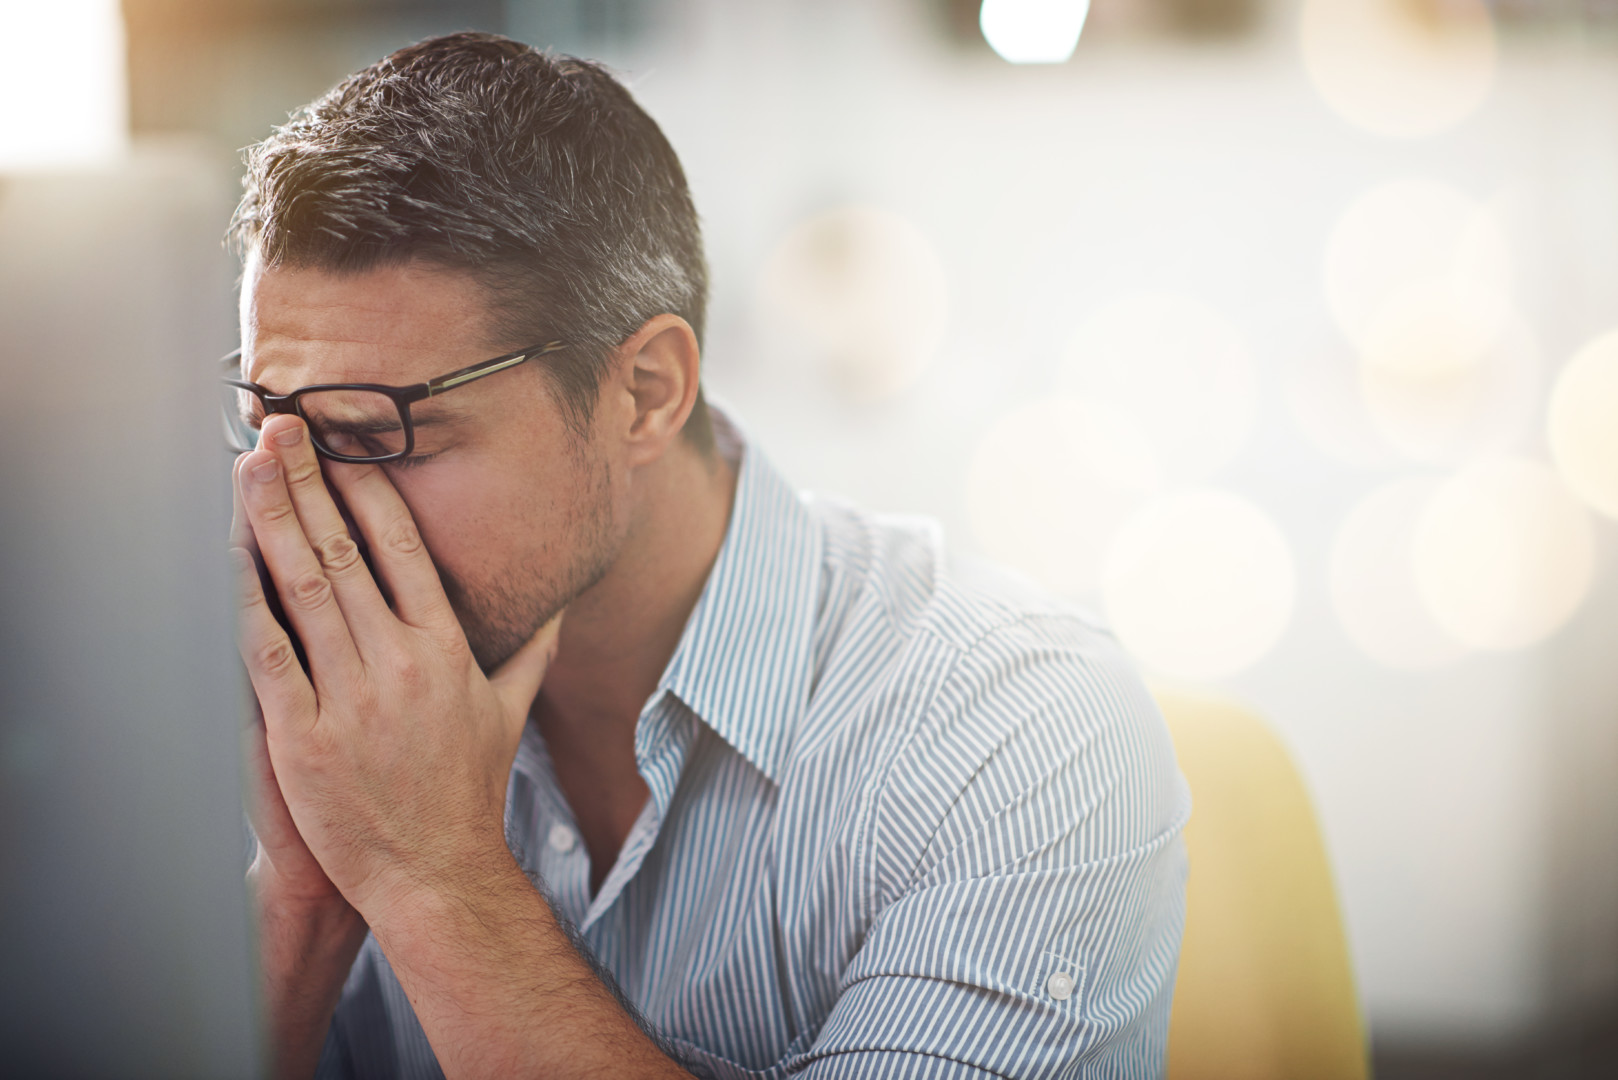 Image of a man rubbing his eyes in need of headache treatment